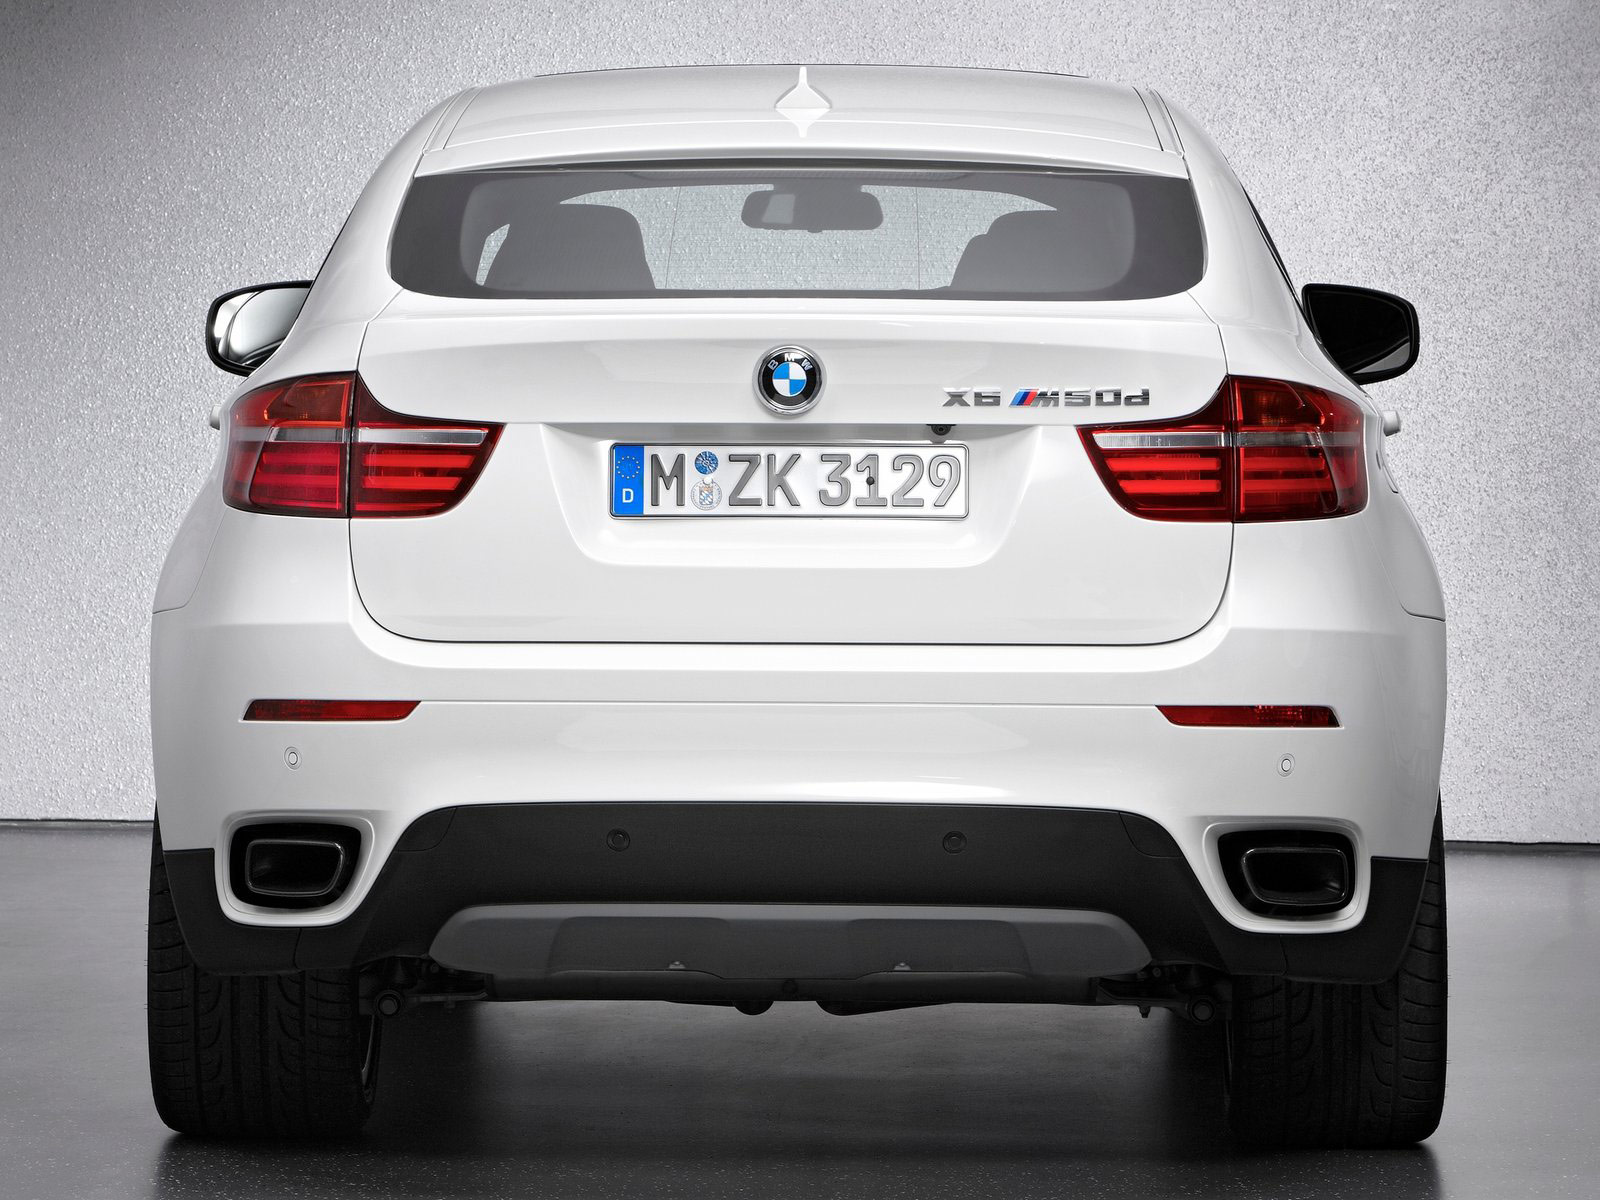 2013 Bmw X6 M50d Car Insurance Information